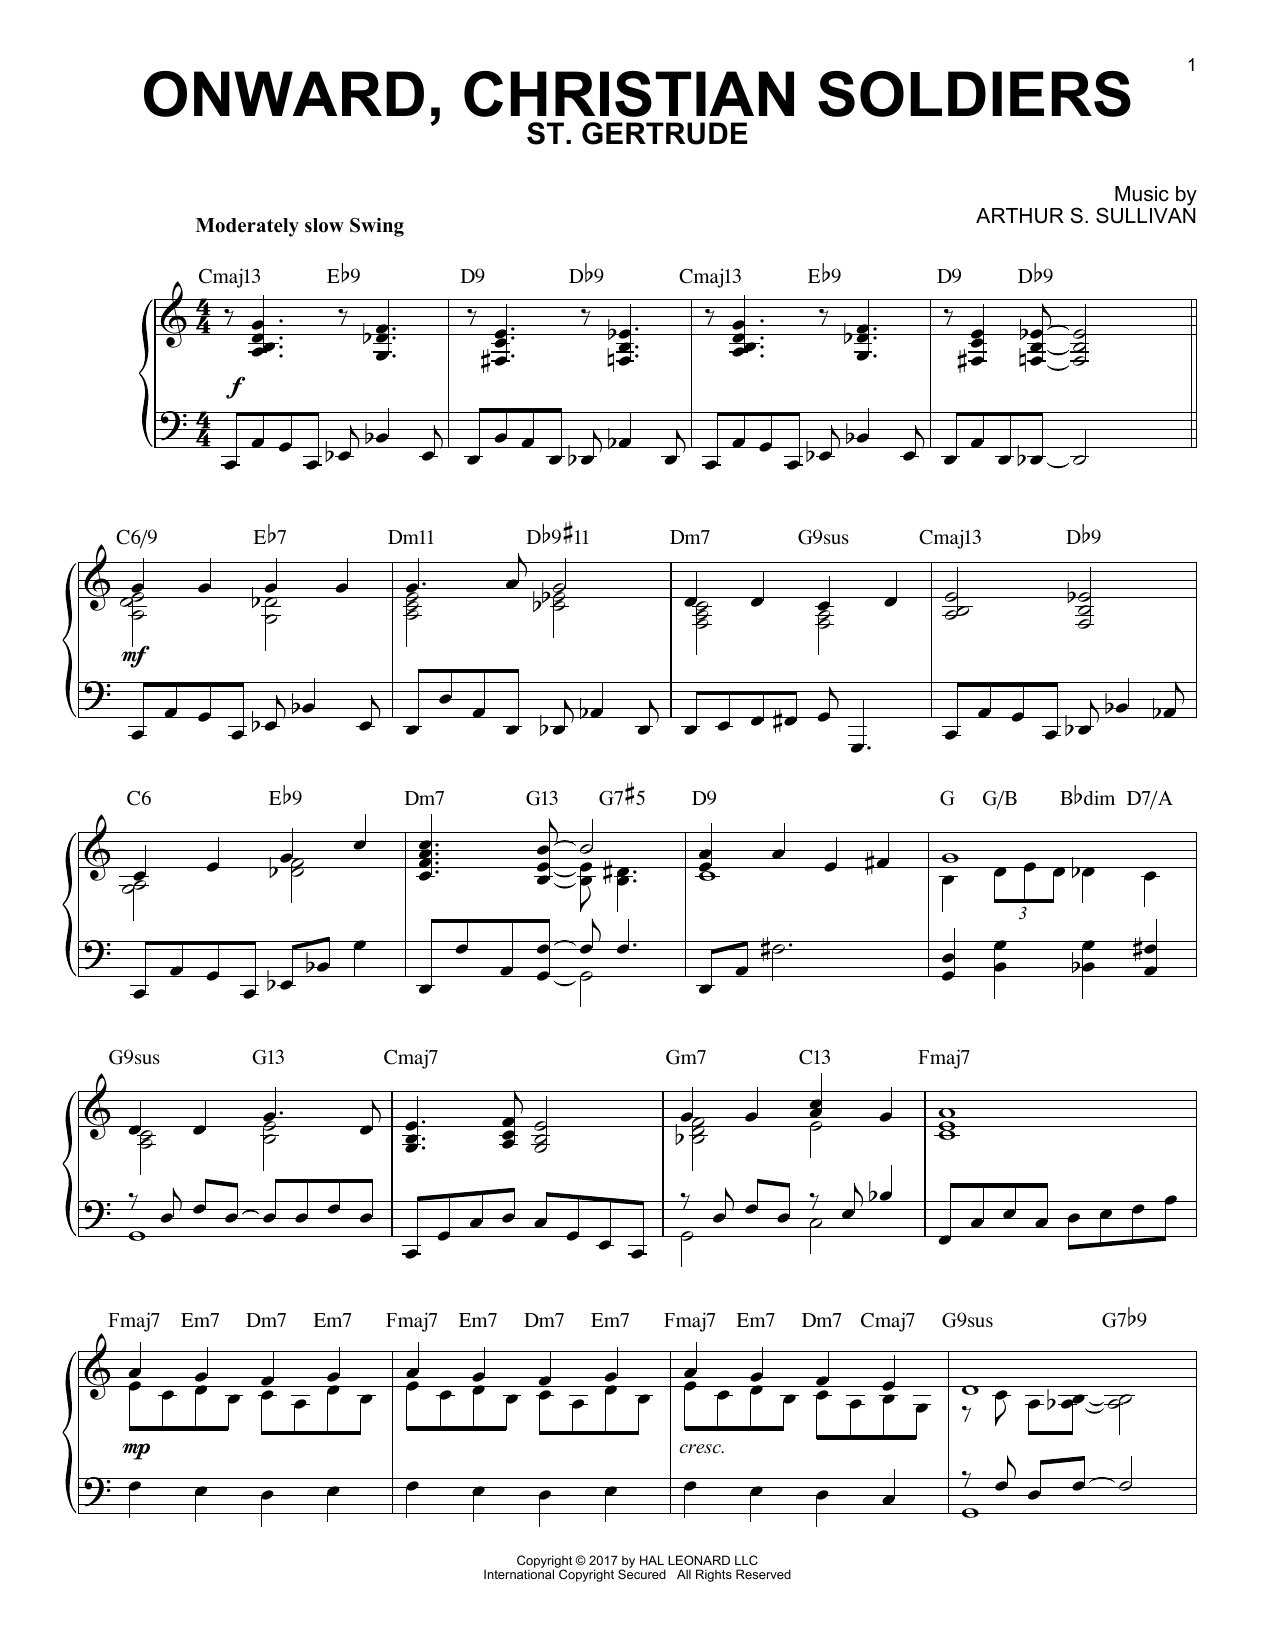 Sabine Baring-Gould Onward, Christian Soldiers [Jazz version] sheet music notes and chords. Download Printable PDF.